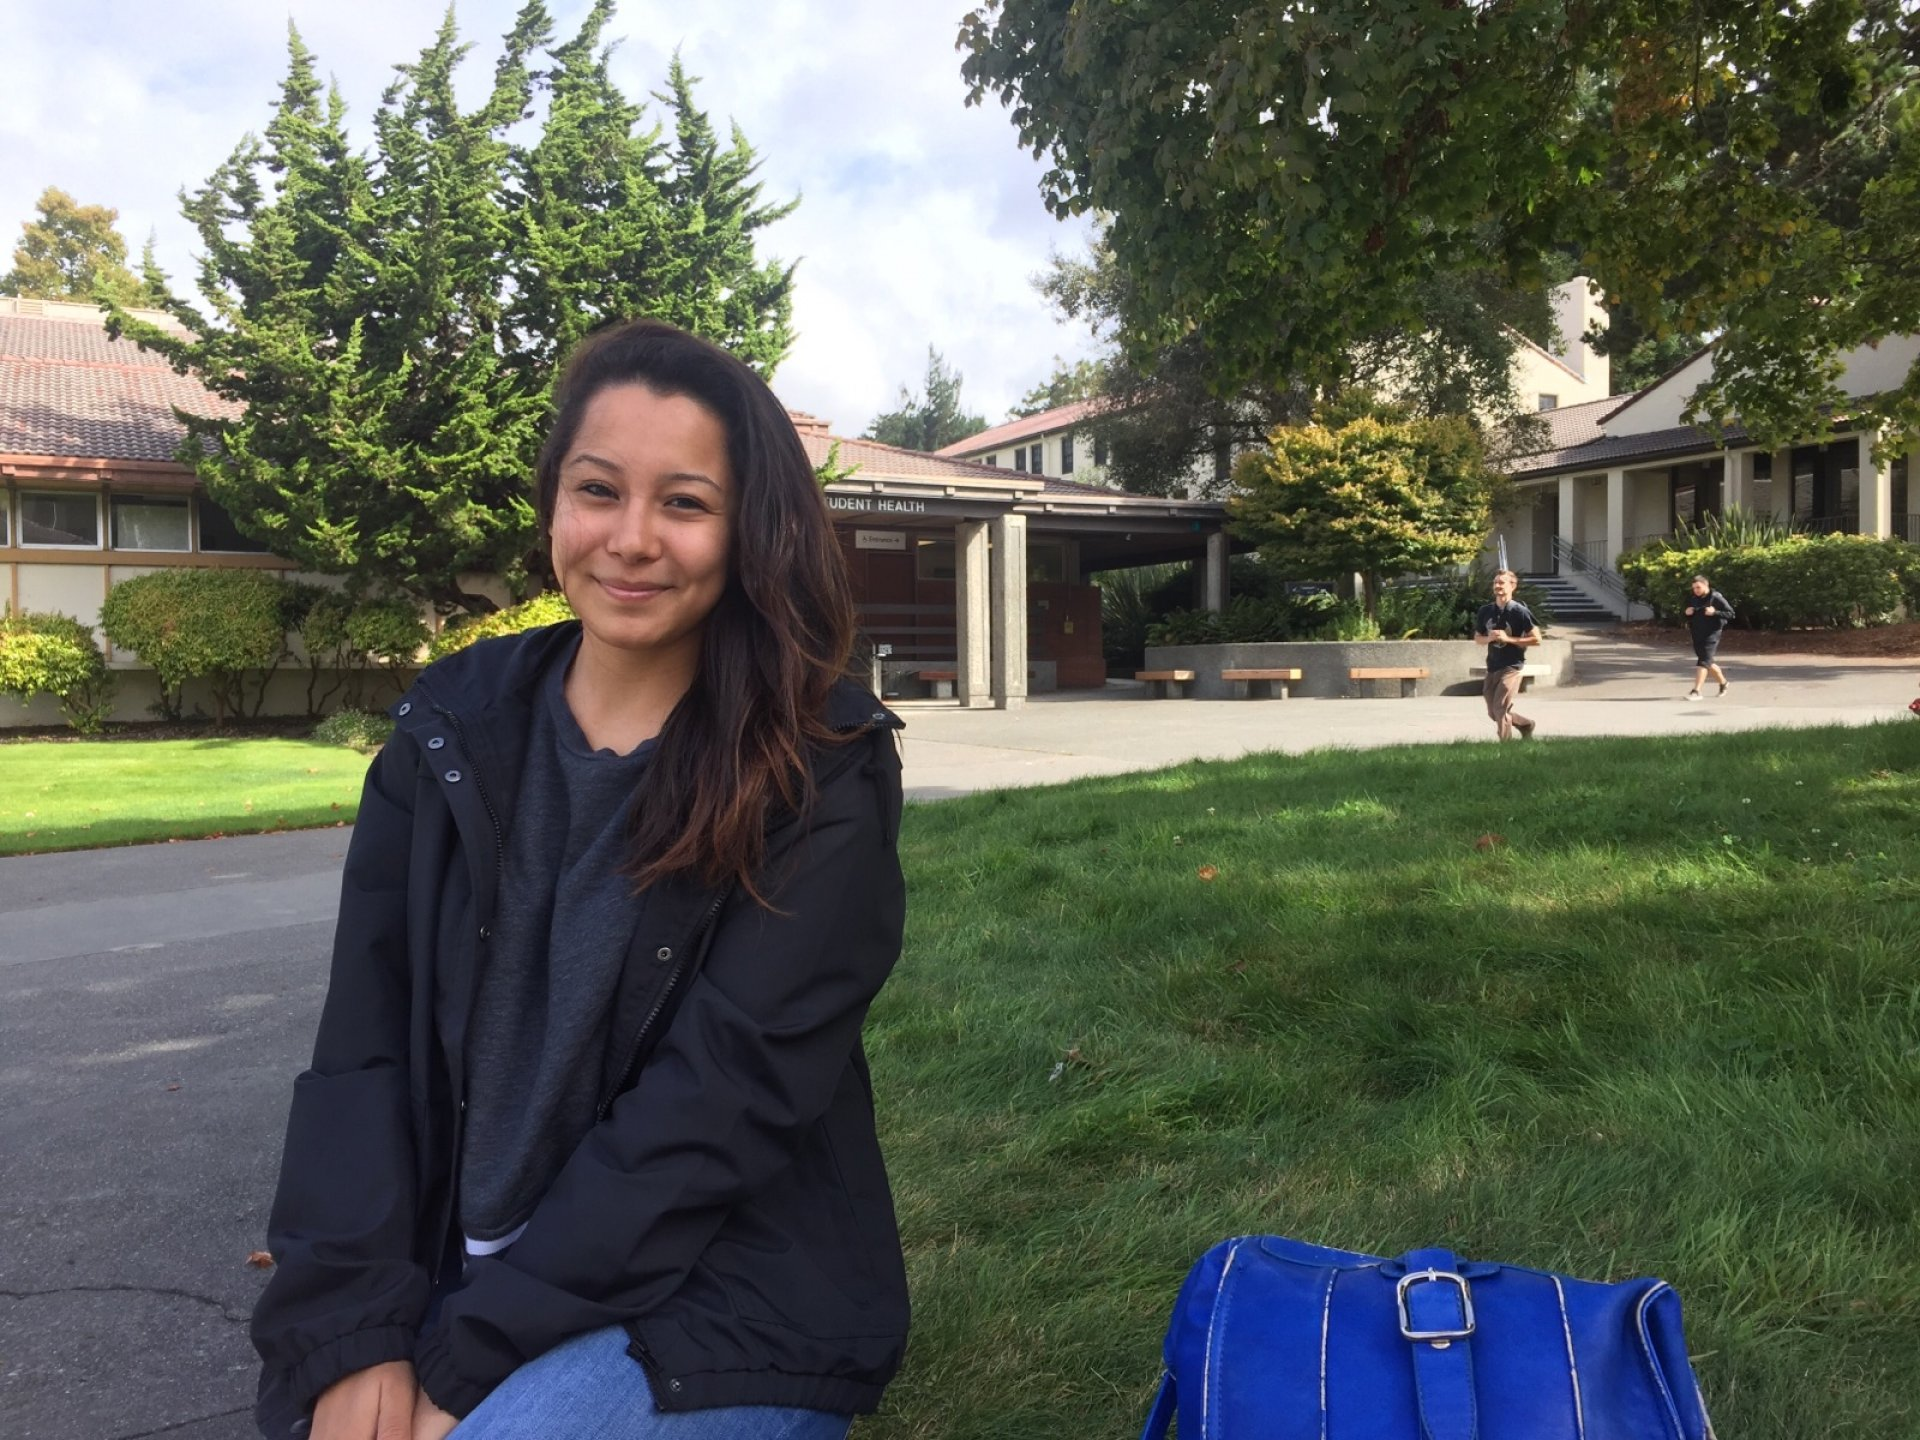 Kianna Rodriguez, a communications major at HSU, believes unity in the aftermath of a disaster is essential. Photo credit: Kyra Skylark